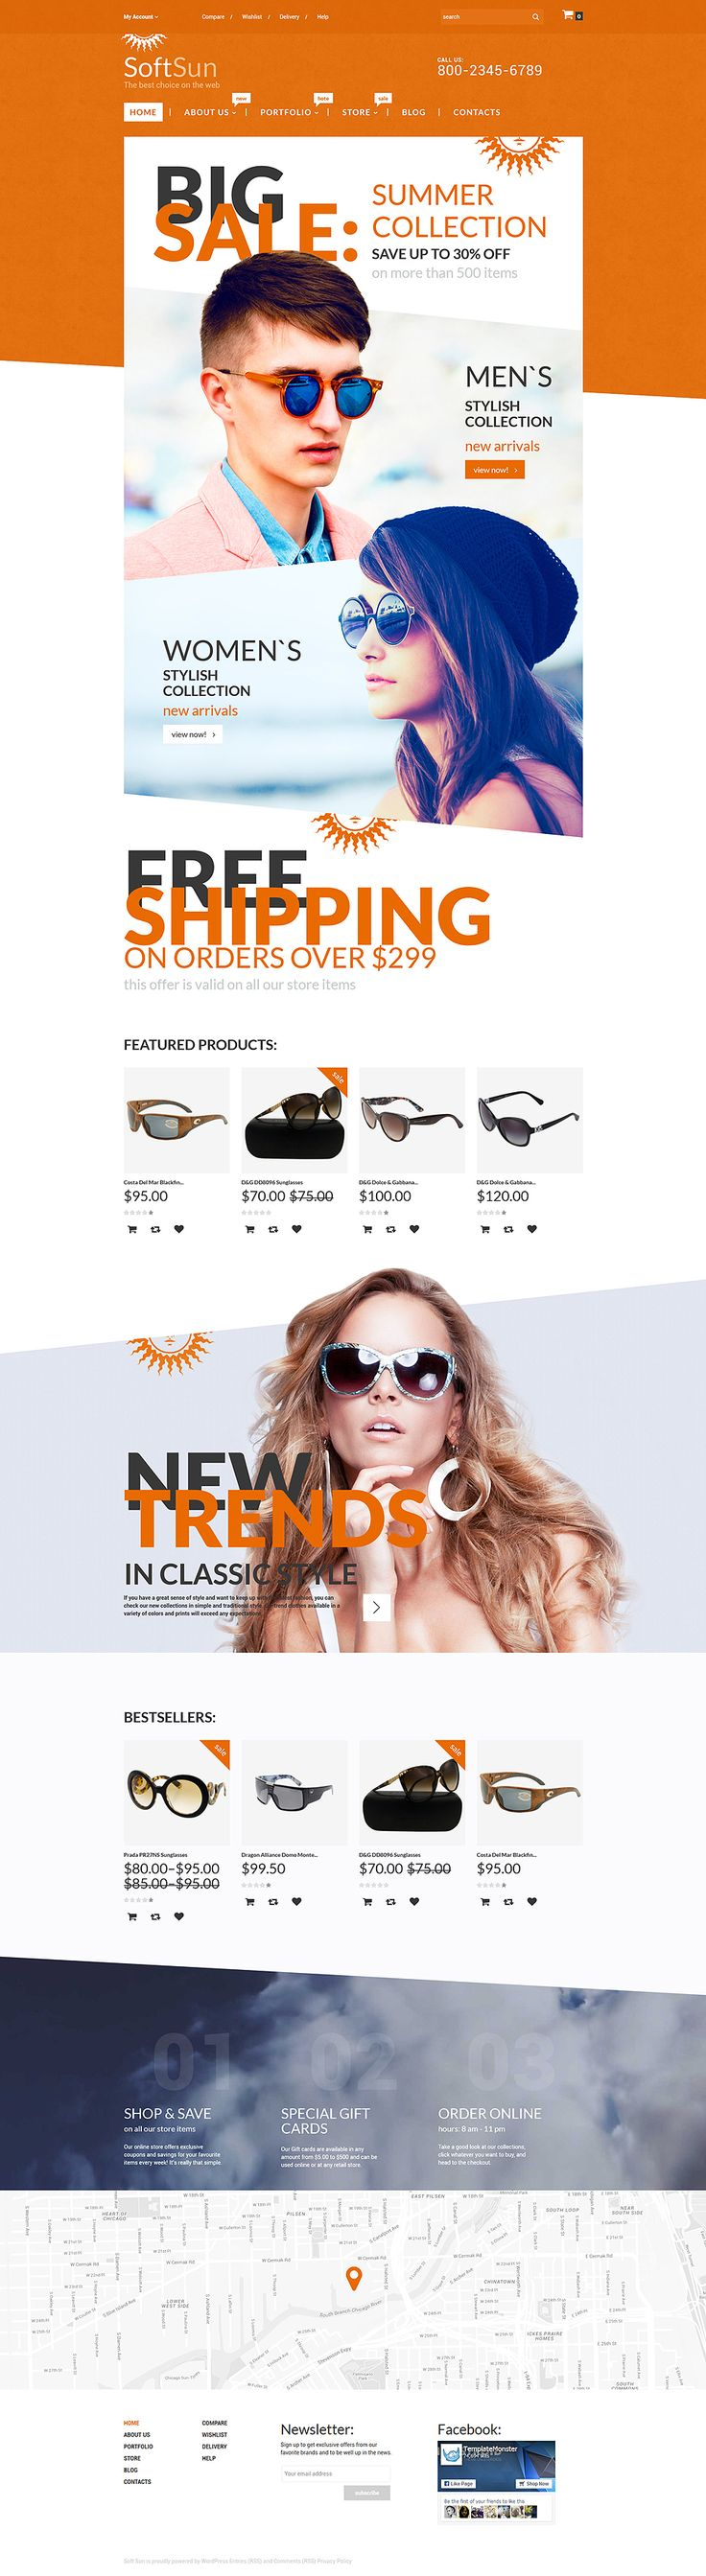 Boost Your Sales with This Sunglasses Shop WooCommerce Theme